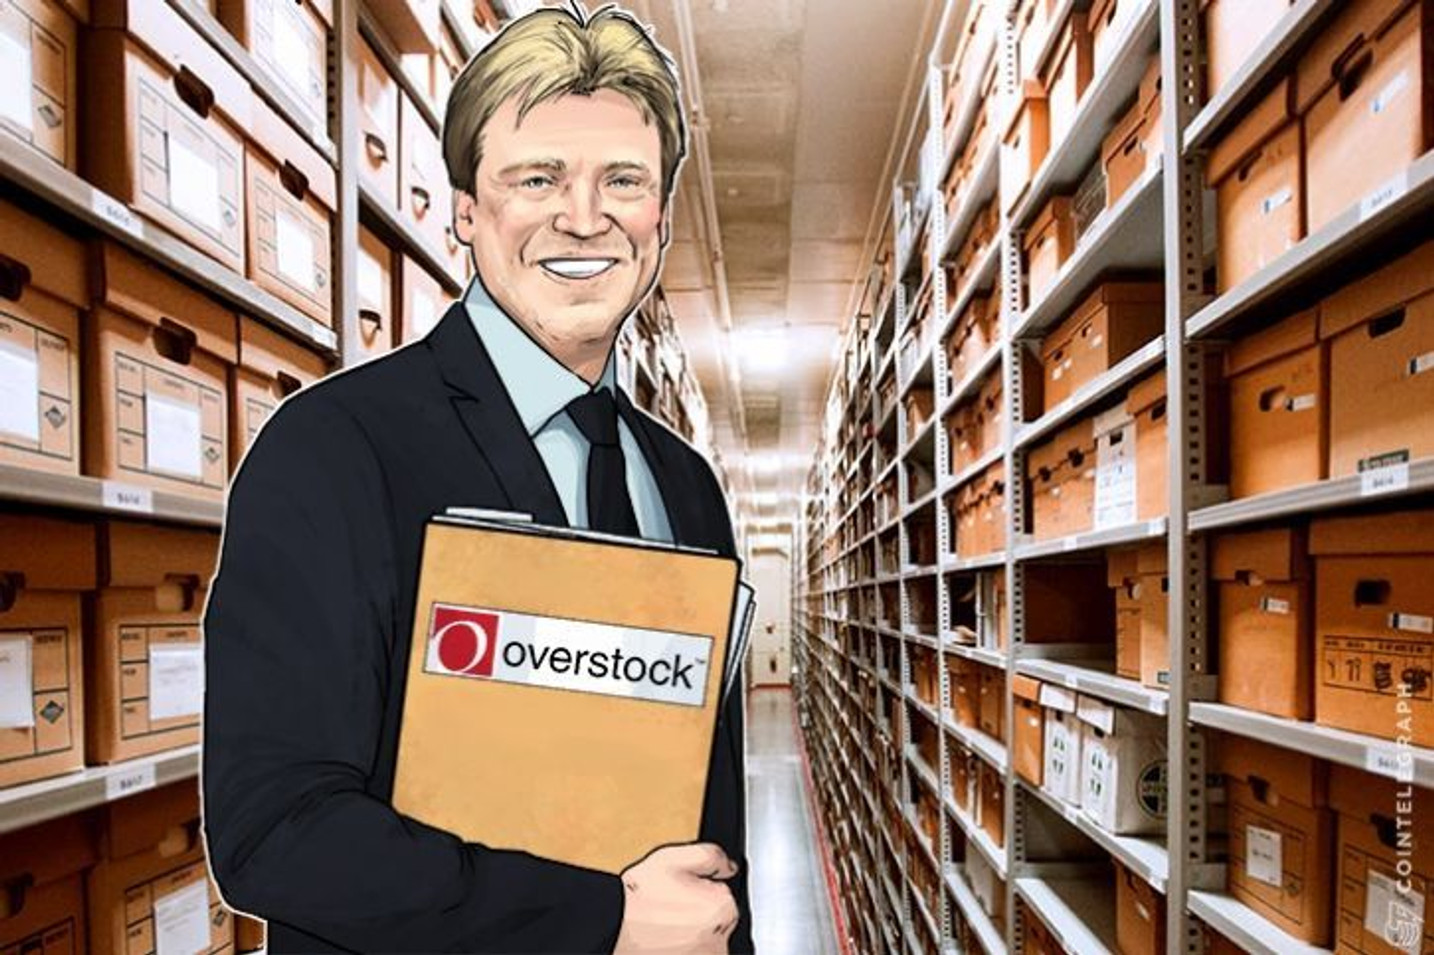 Overstock CEO Puts 'Millions Of Dollars' Into Unknown Coin, Compares To Bitcoin